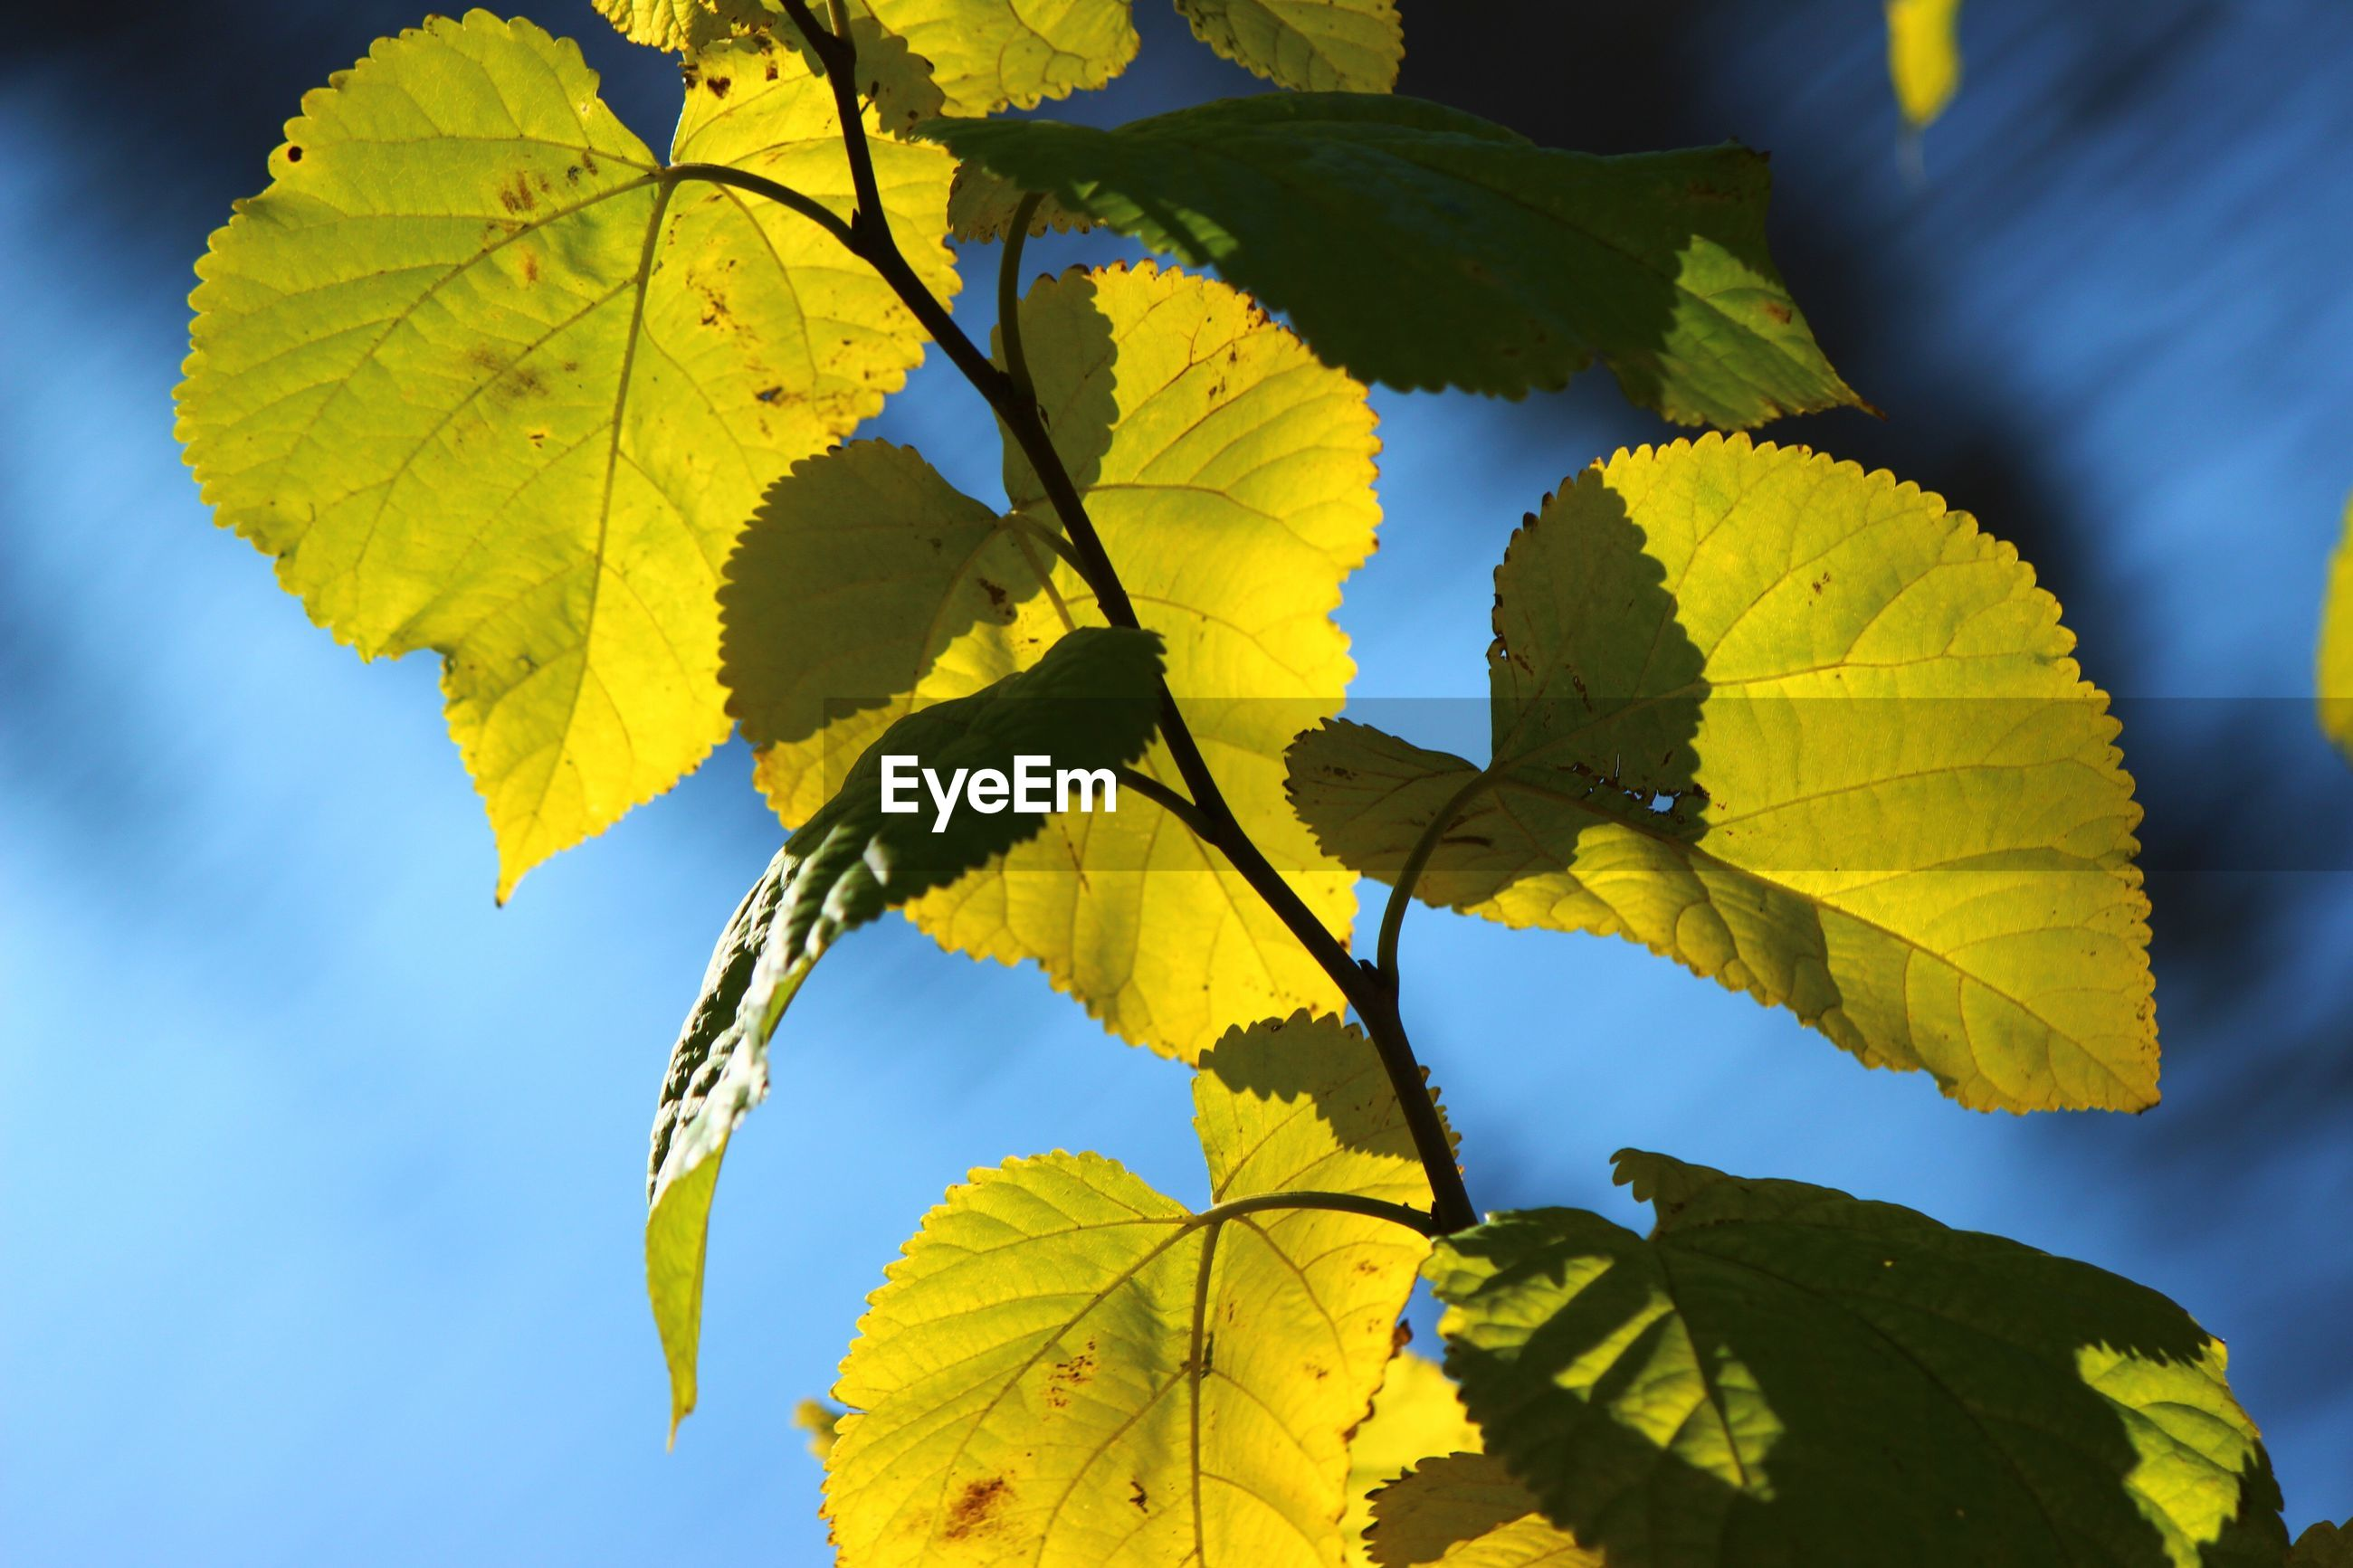 leaf, yellow, nature, autumn, blue, no people, growth, outdoors, close-up, tree, change, sky, low angle view, plant, beauty in nature, branch, day